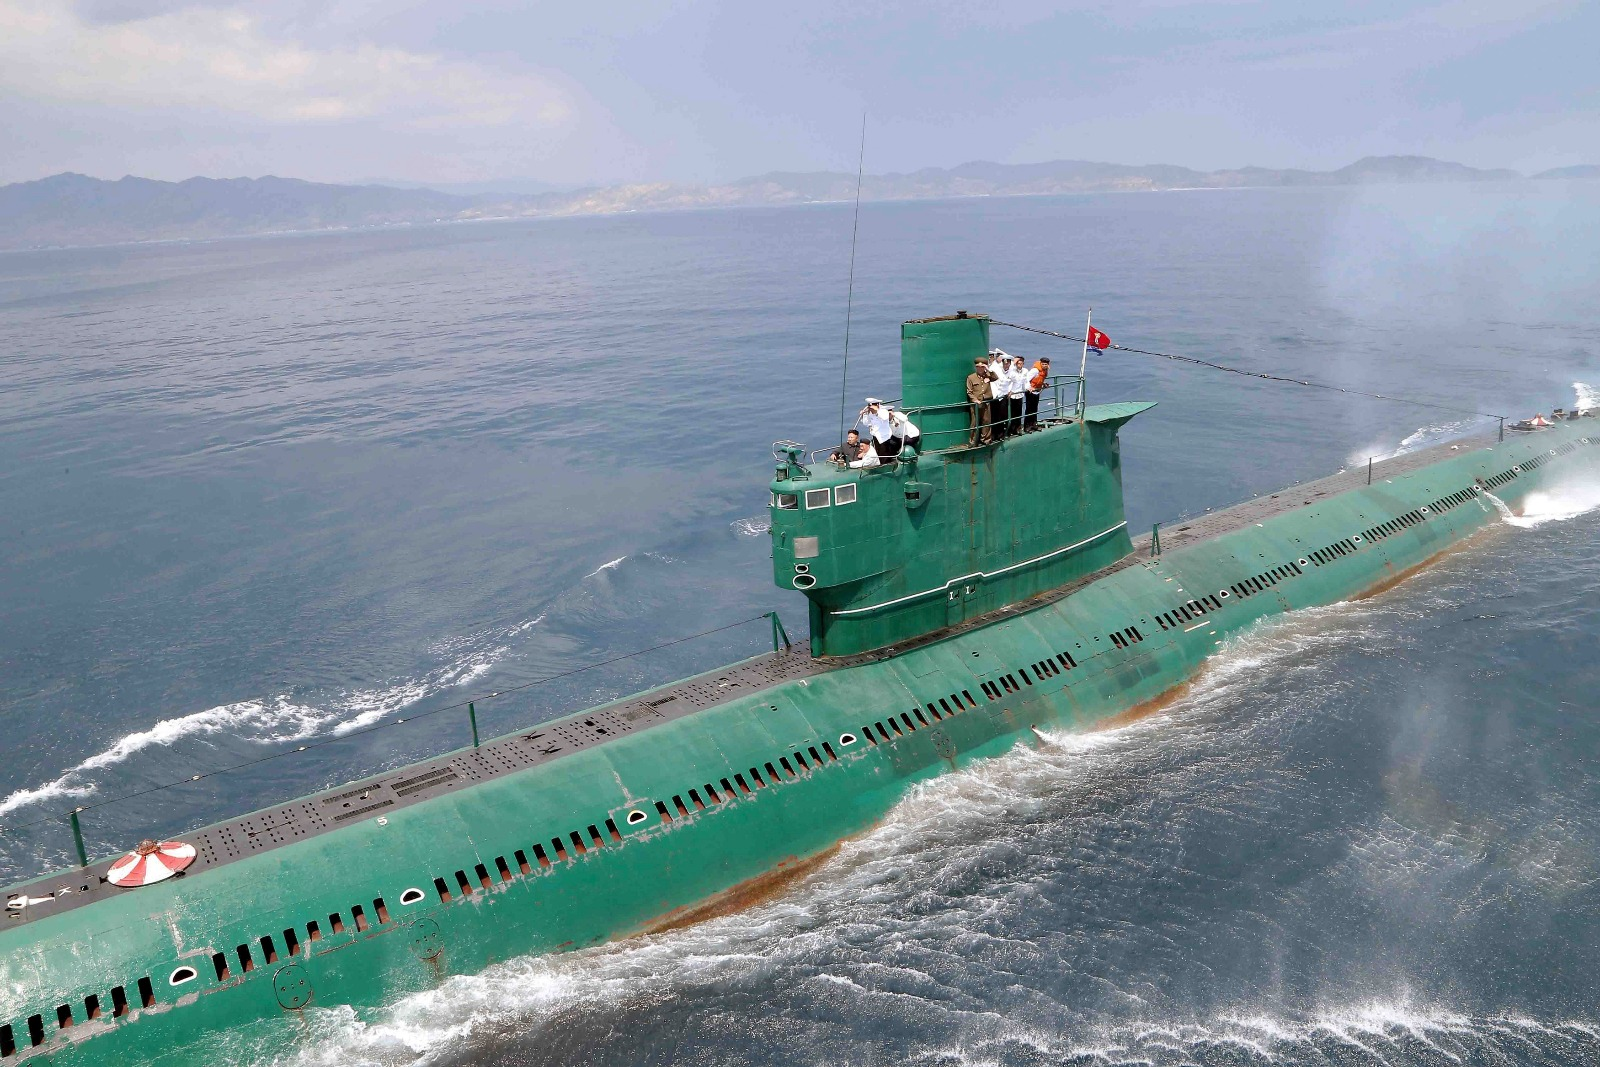 North Korea's Spy Submarines Have Performed Some Wild Missions—But